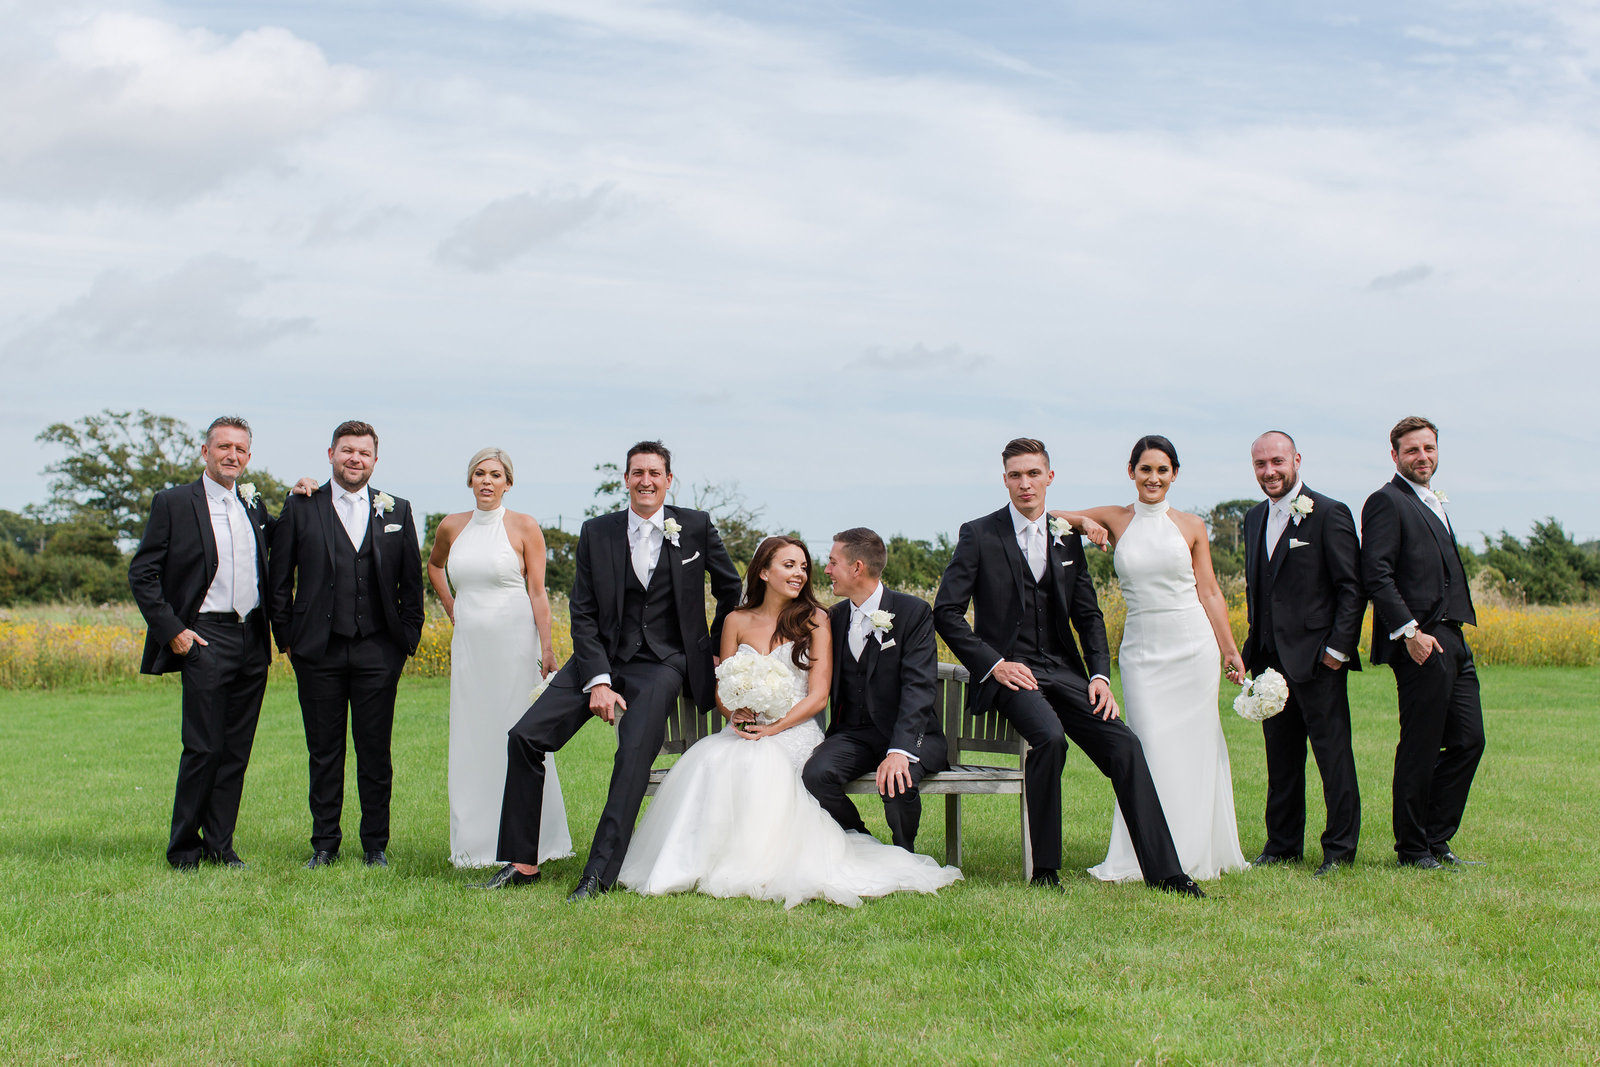 adorlee-0534-southend-barns-wedding-photographer-chichester-west-sussex